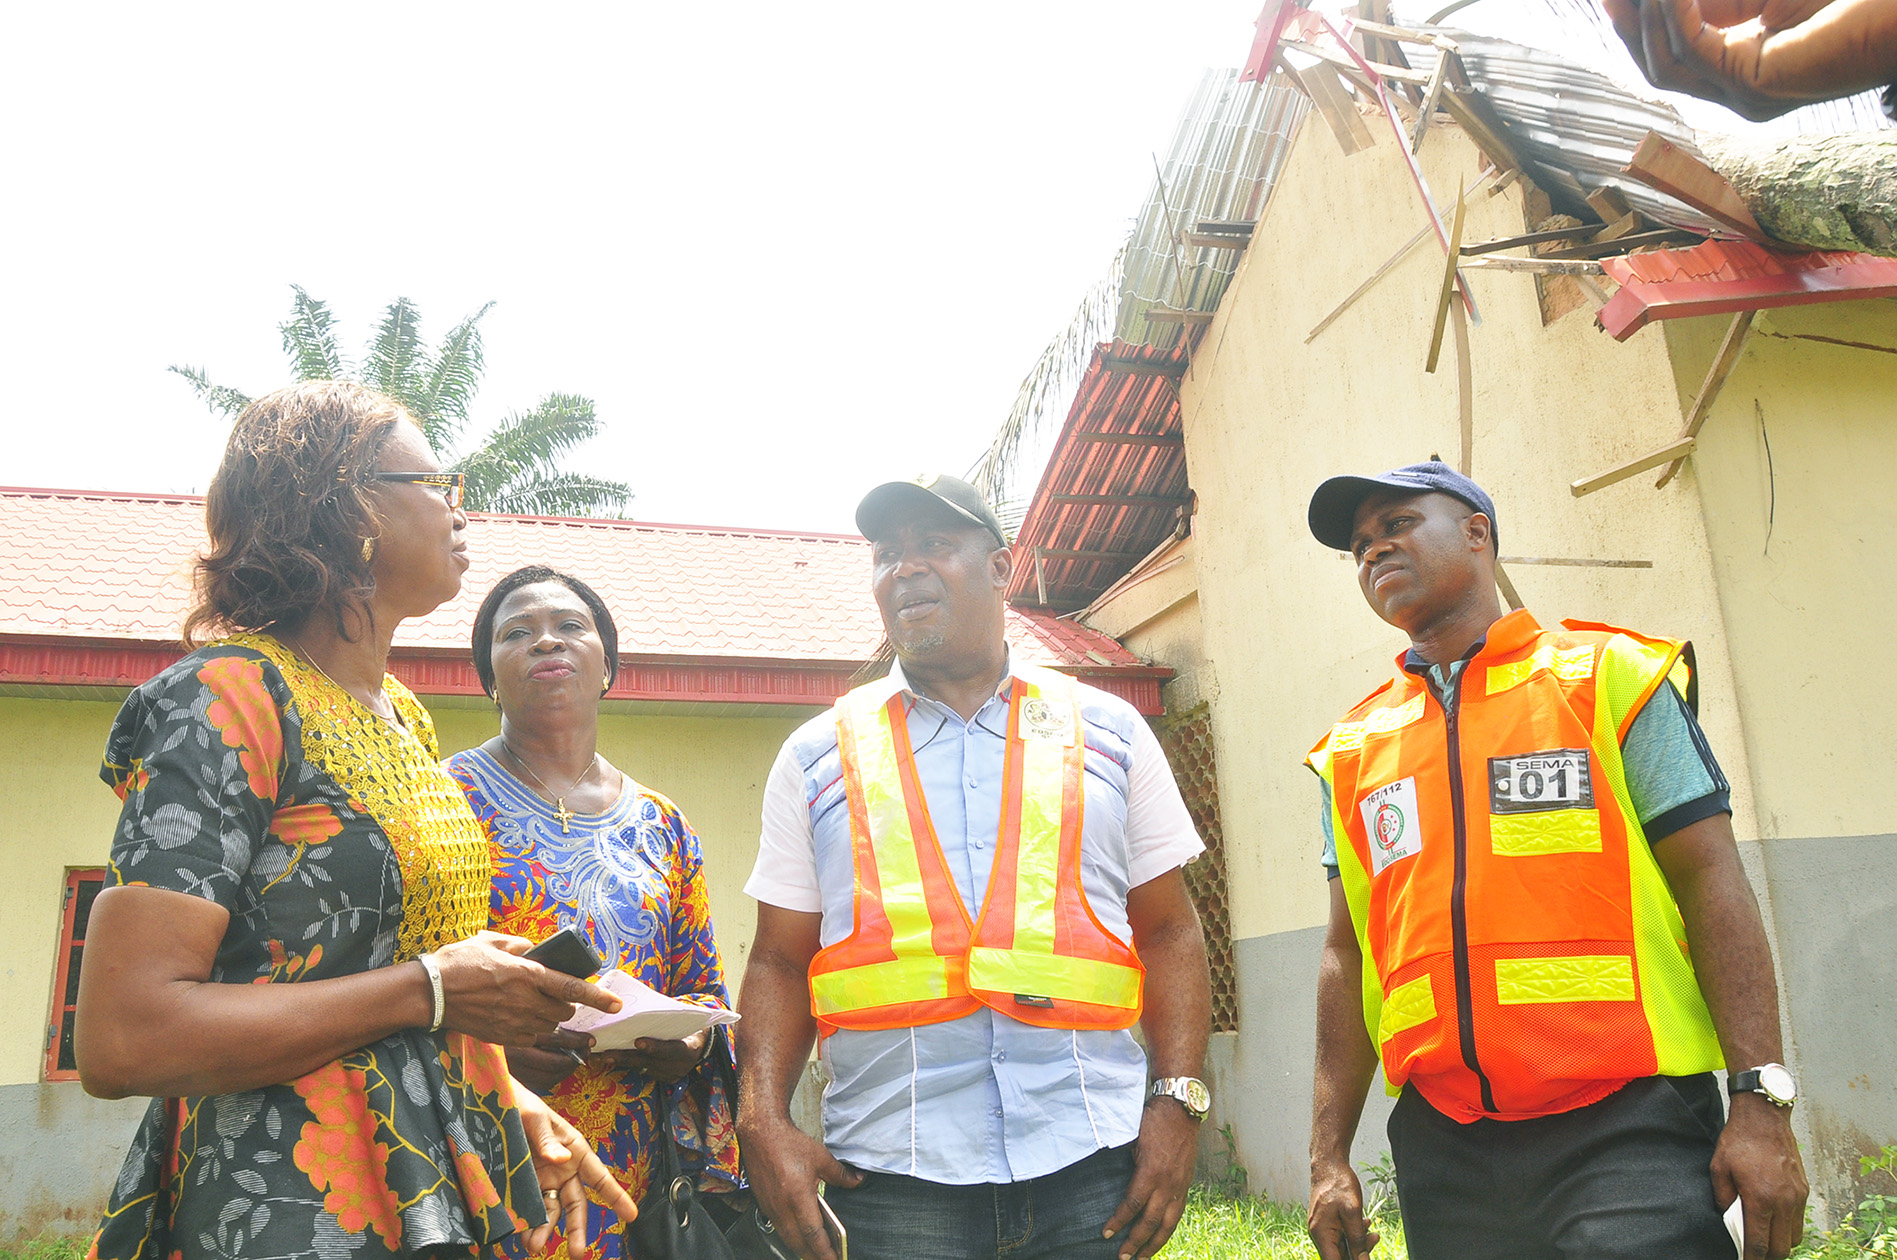 Special Adviser to Edo State Governor on Special Duties, Hon. Yakubu Gowon (2nd right), with other members of the state government's delegation, during a visit for an assessment of the impact of a windstorm in Iguobazuwa, headquarters of Ovia South-West Local Government Area, in Edo State